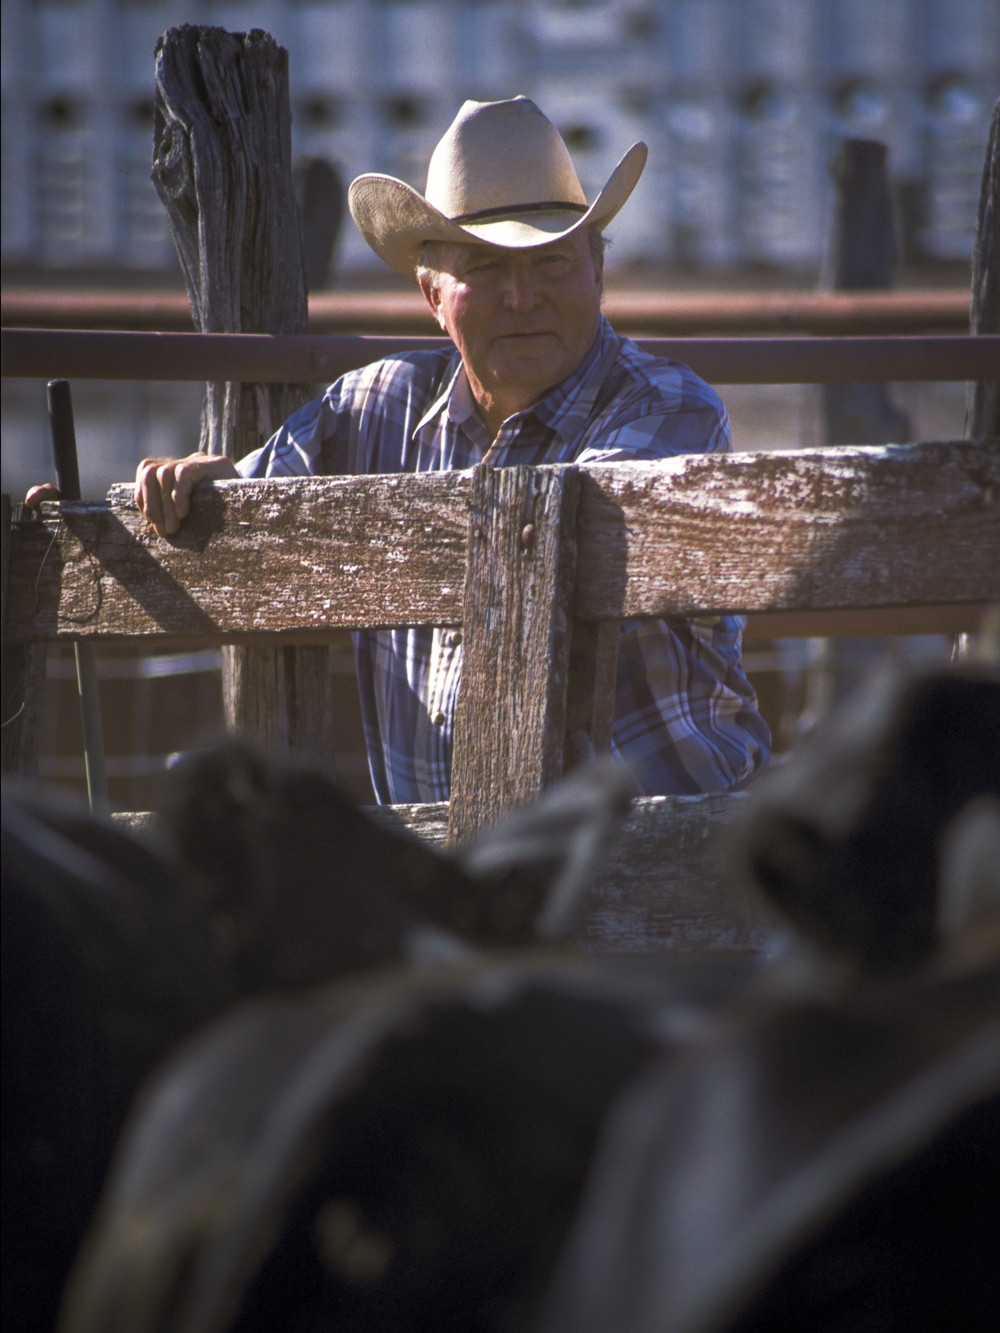 Cattle rancher, North Texas Copyright © Kipp Baker, All rights reserved